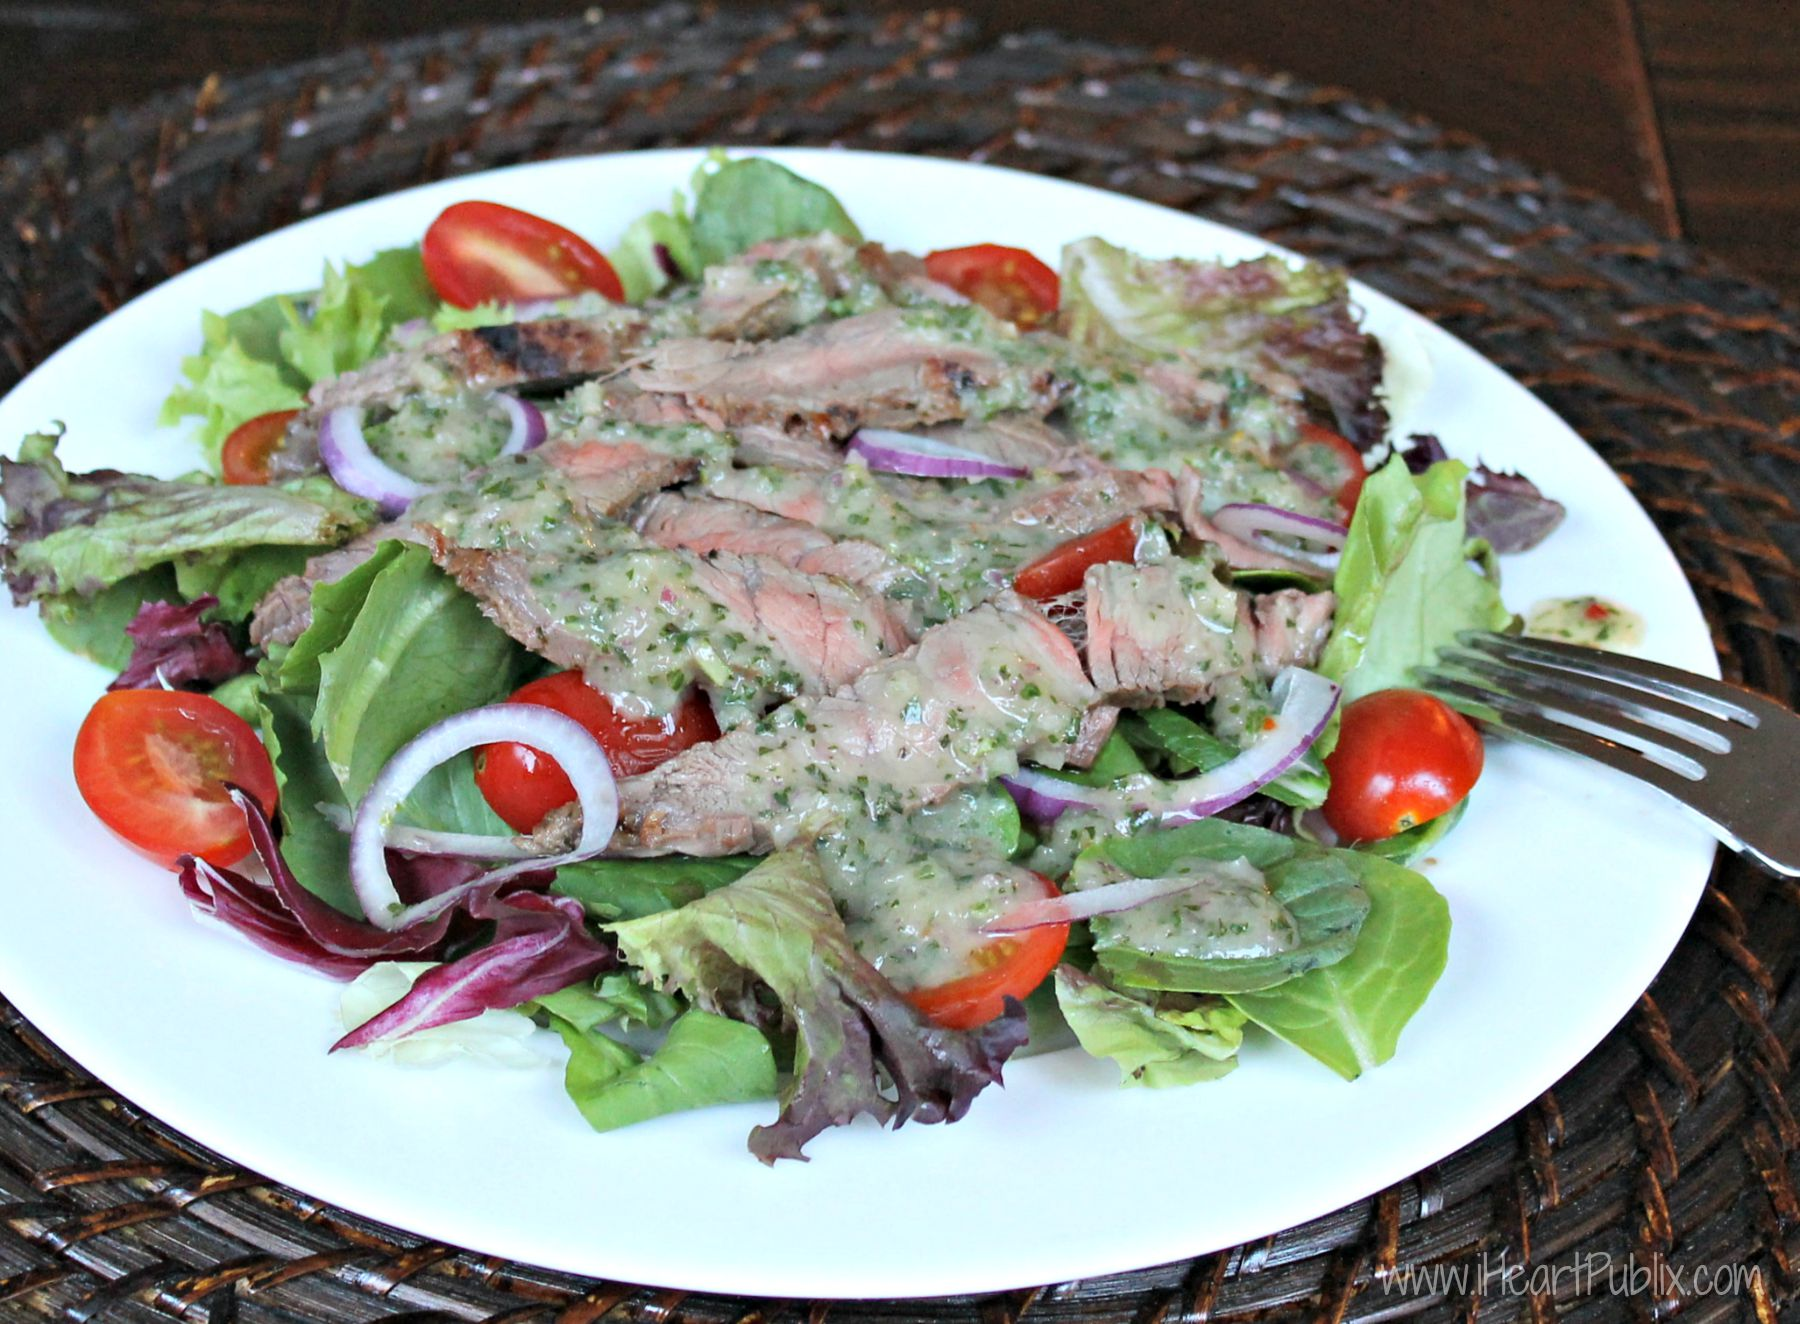 CARIBBEAN CHIMICHURRI STEAK SALAD